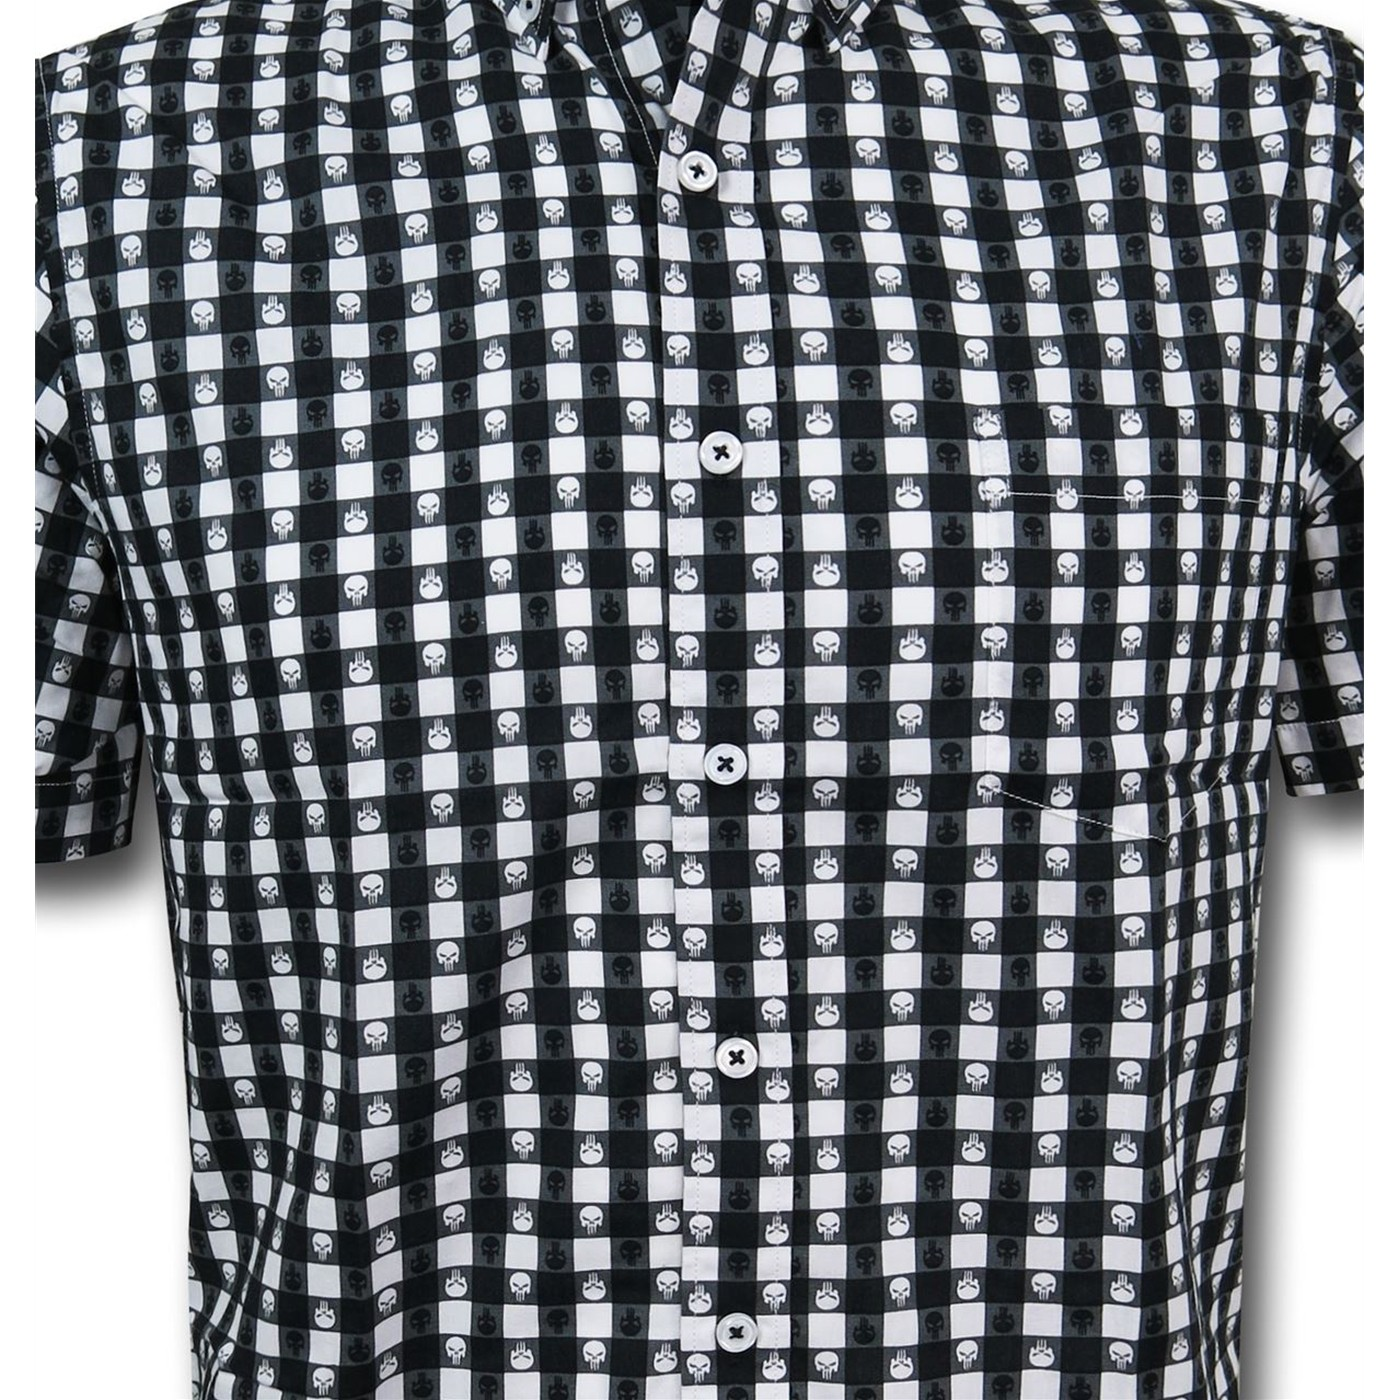 Punisher Plaid Symbol Men's Fitted Button Down Shirt